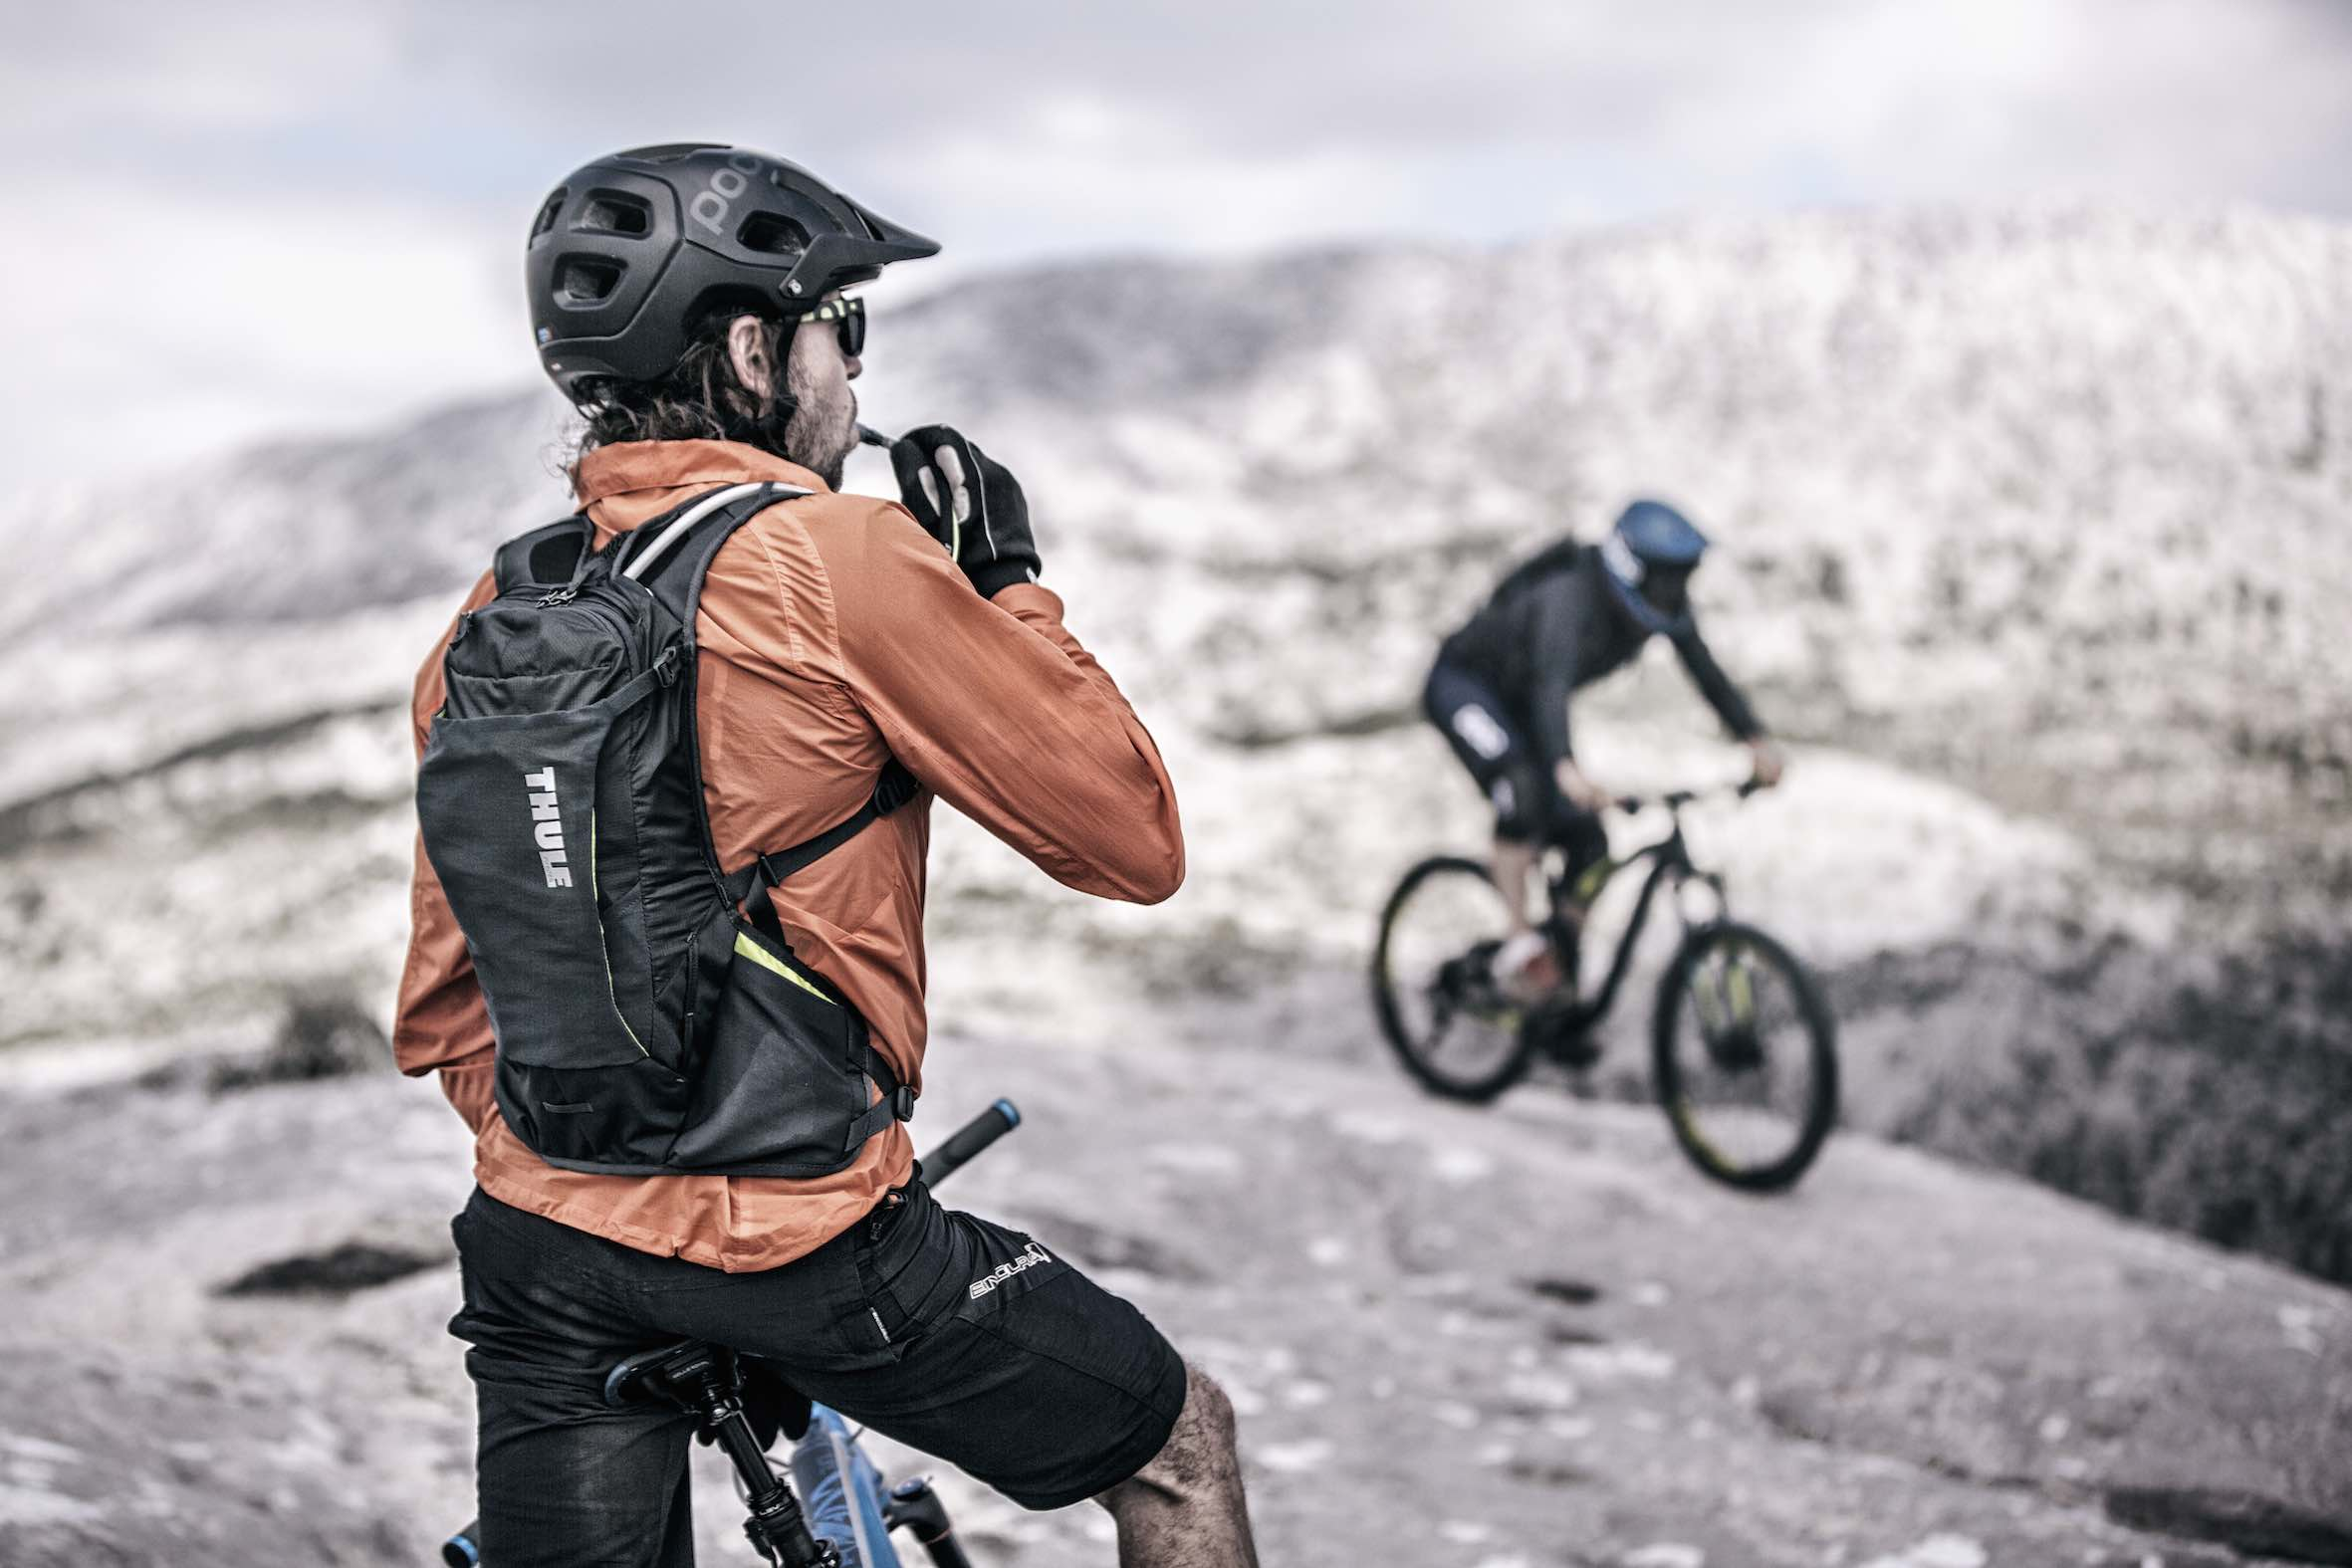 Introducing the new Thule bike hydration backpacks - the Thule Vital collection perfect for Enduro mountain biking